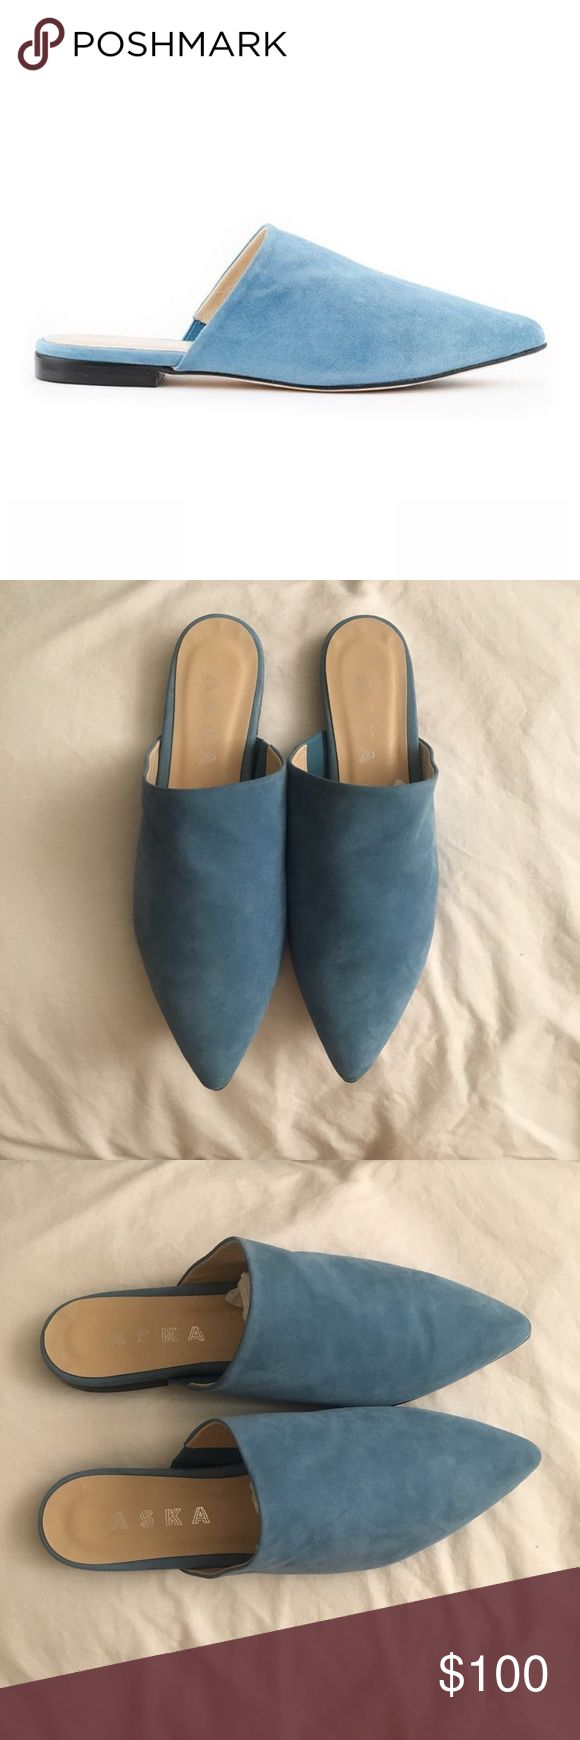 Aska Blue Suede Mules. Slip ons  (Lee) Lee pointy toe (slip-on) mule is the perfect alternative to a ballet flat. Blue Suede. Made in Italy. Runs a whole to 1 1/2 size small because it is a mule. Fits like a 7 - 7 1/2. Aska Shoes Mules & Clogs